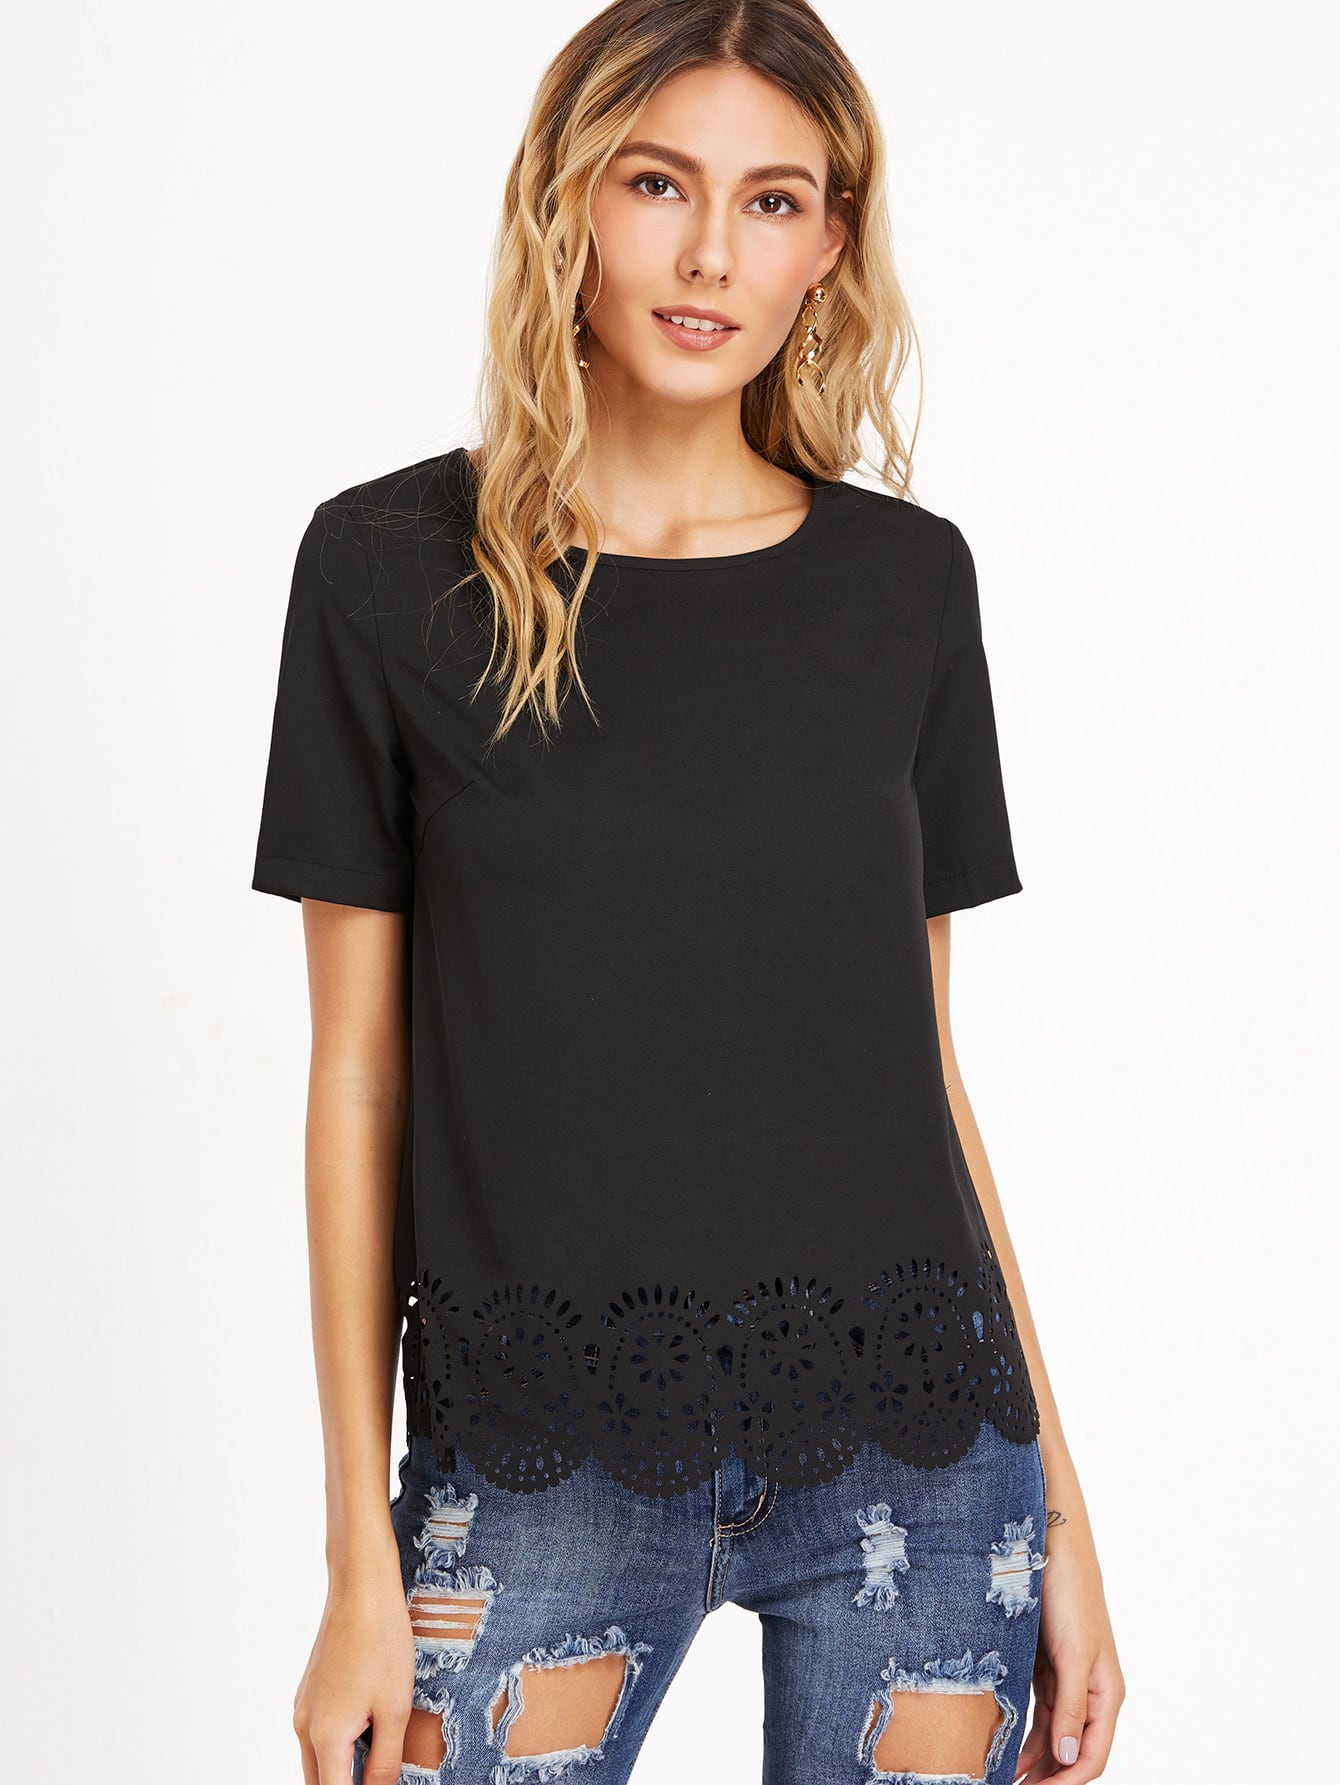 Laser Cutout Scallop Hem Top платье quelle zarina 1020454